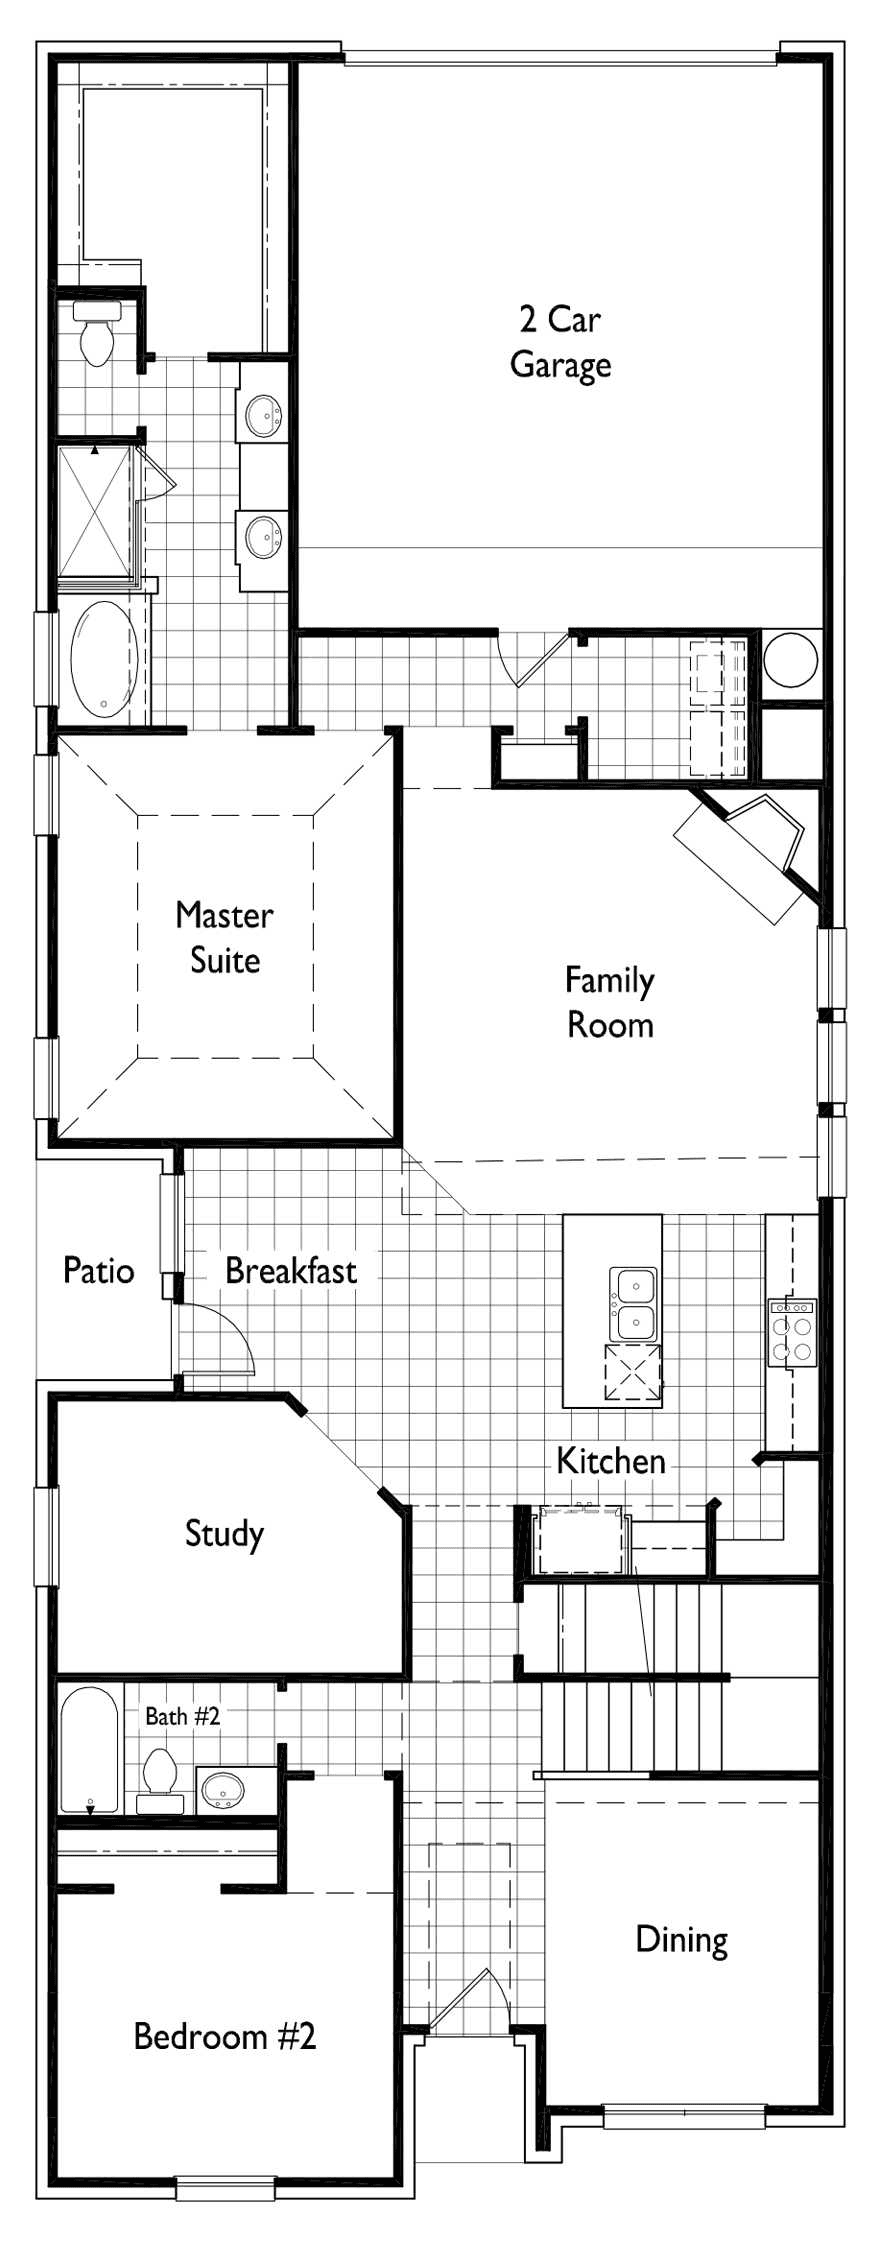 Plan 308 by Highland Homes 5